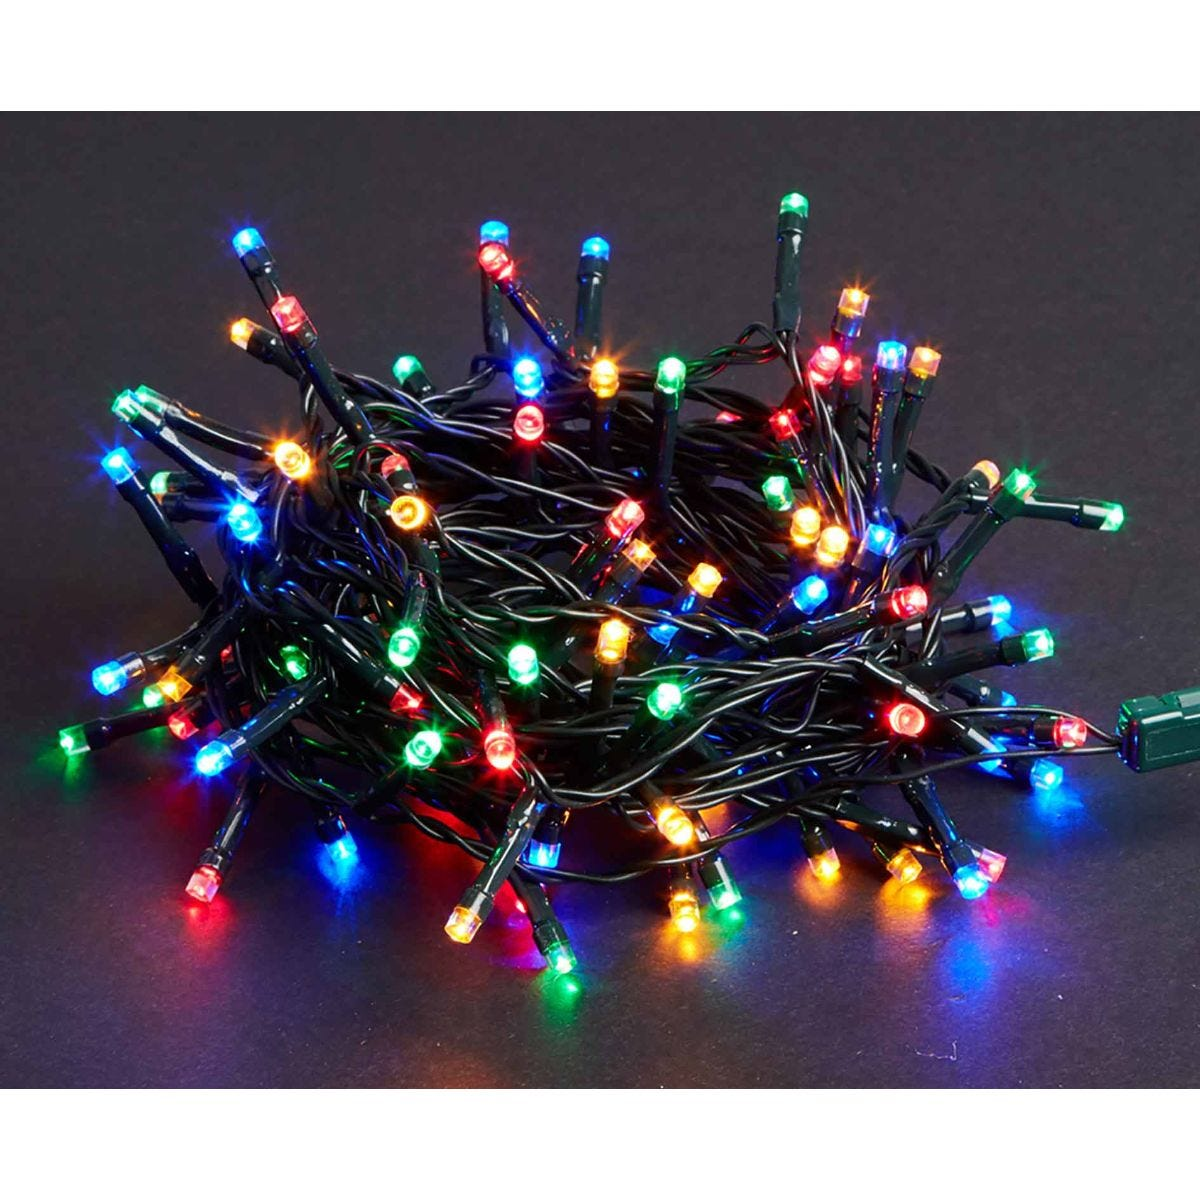 Image of 200 LED String Lights Mains Operated Multi Coloured